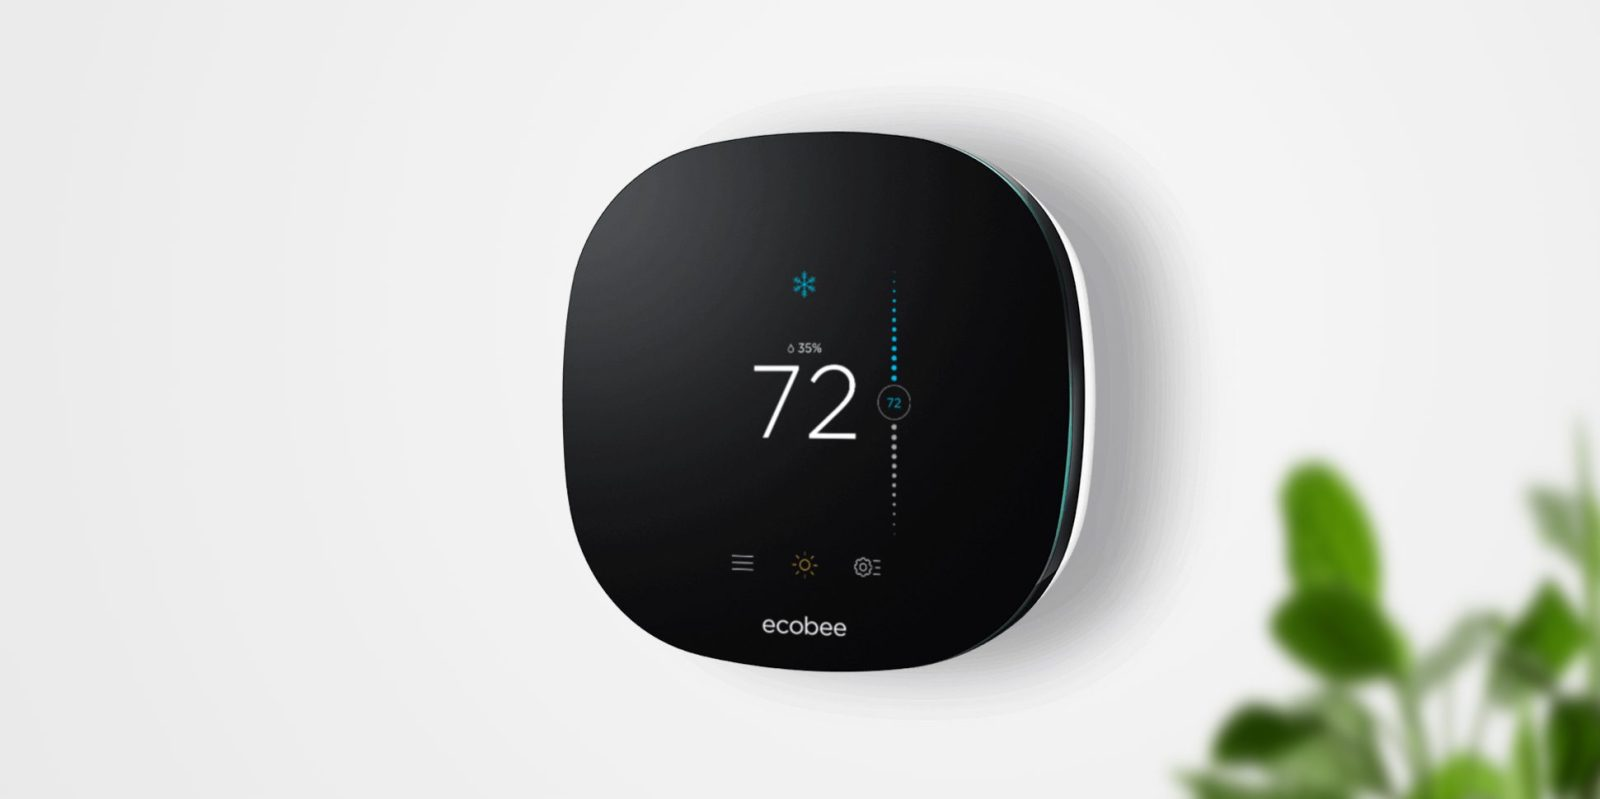 Ecobee google dog kennels tractor supply